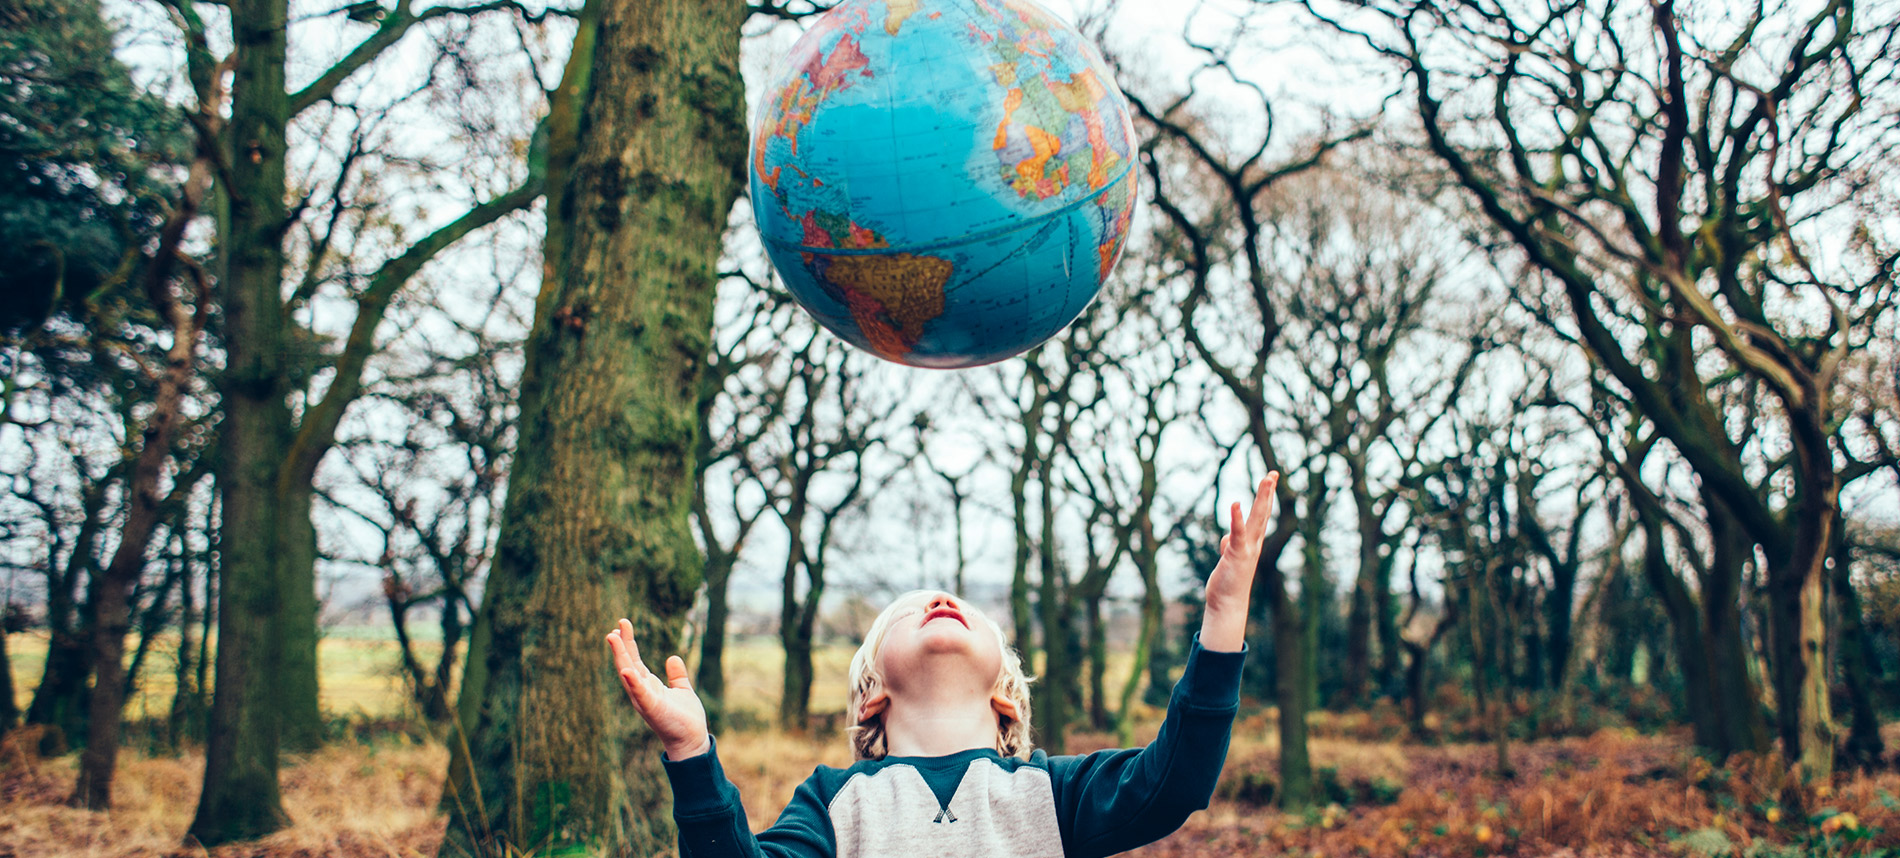 How do kids perceive the planet